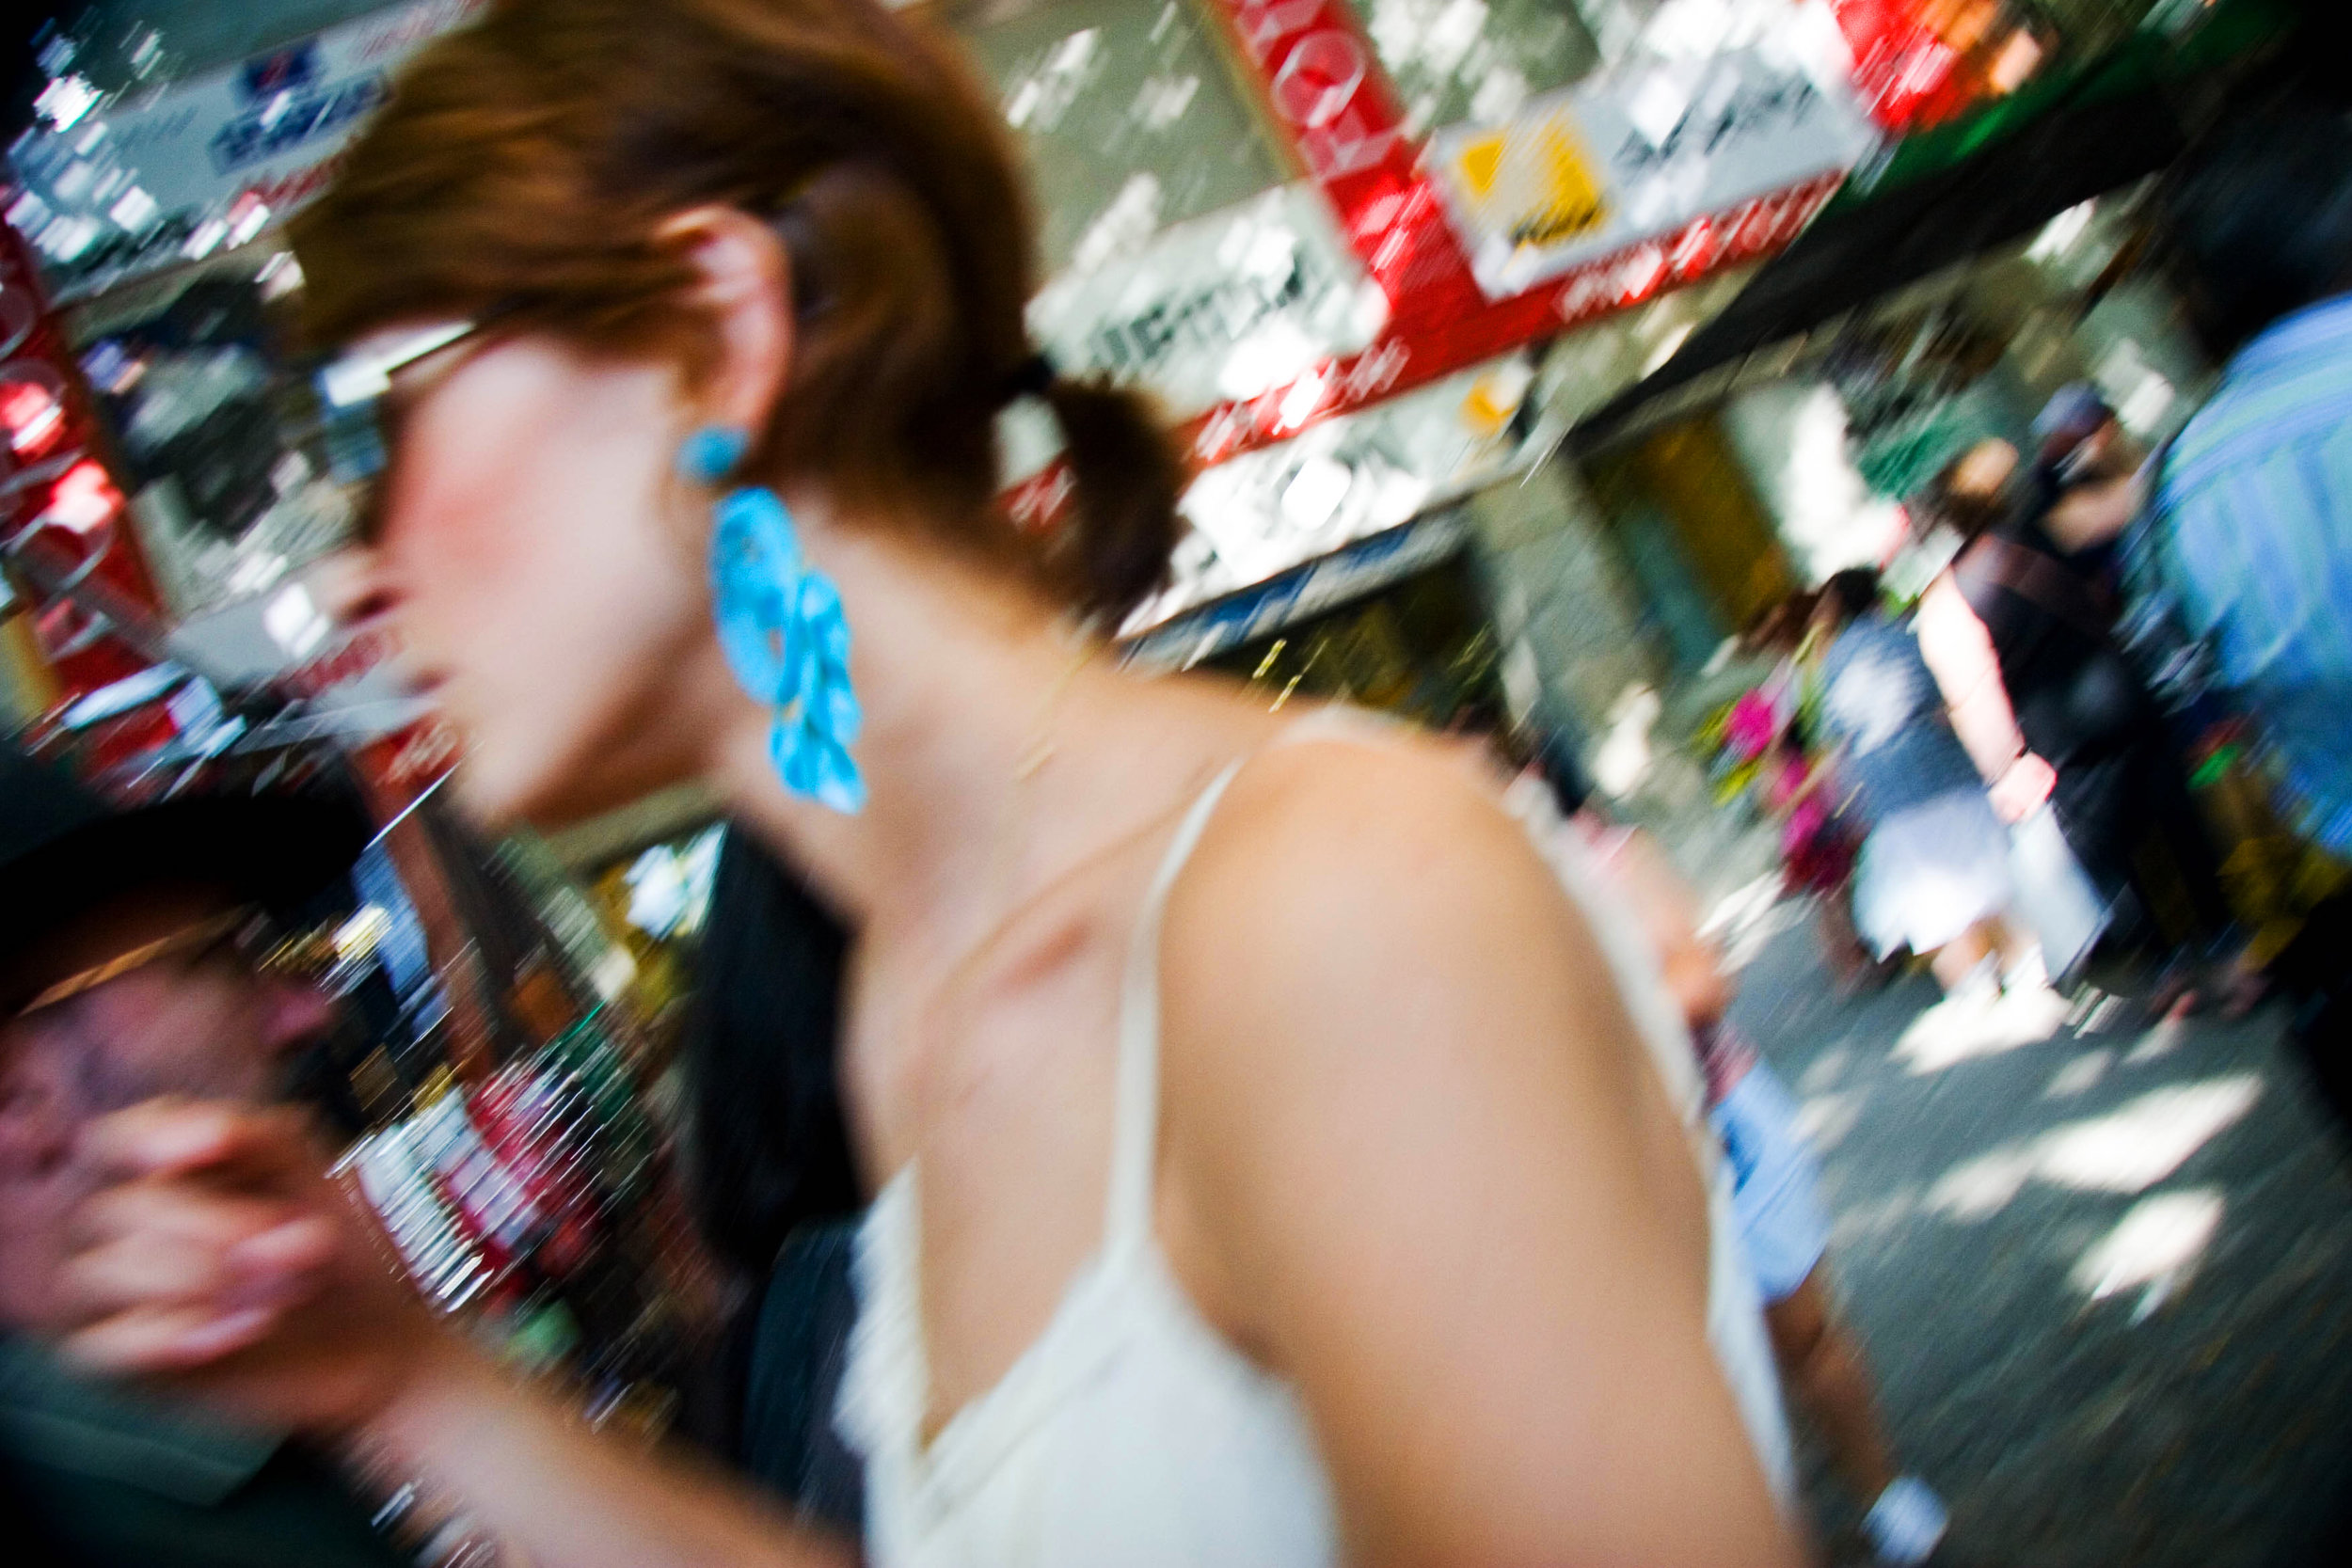 Girl with a blue earring. Rastro Market. Madrid